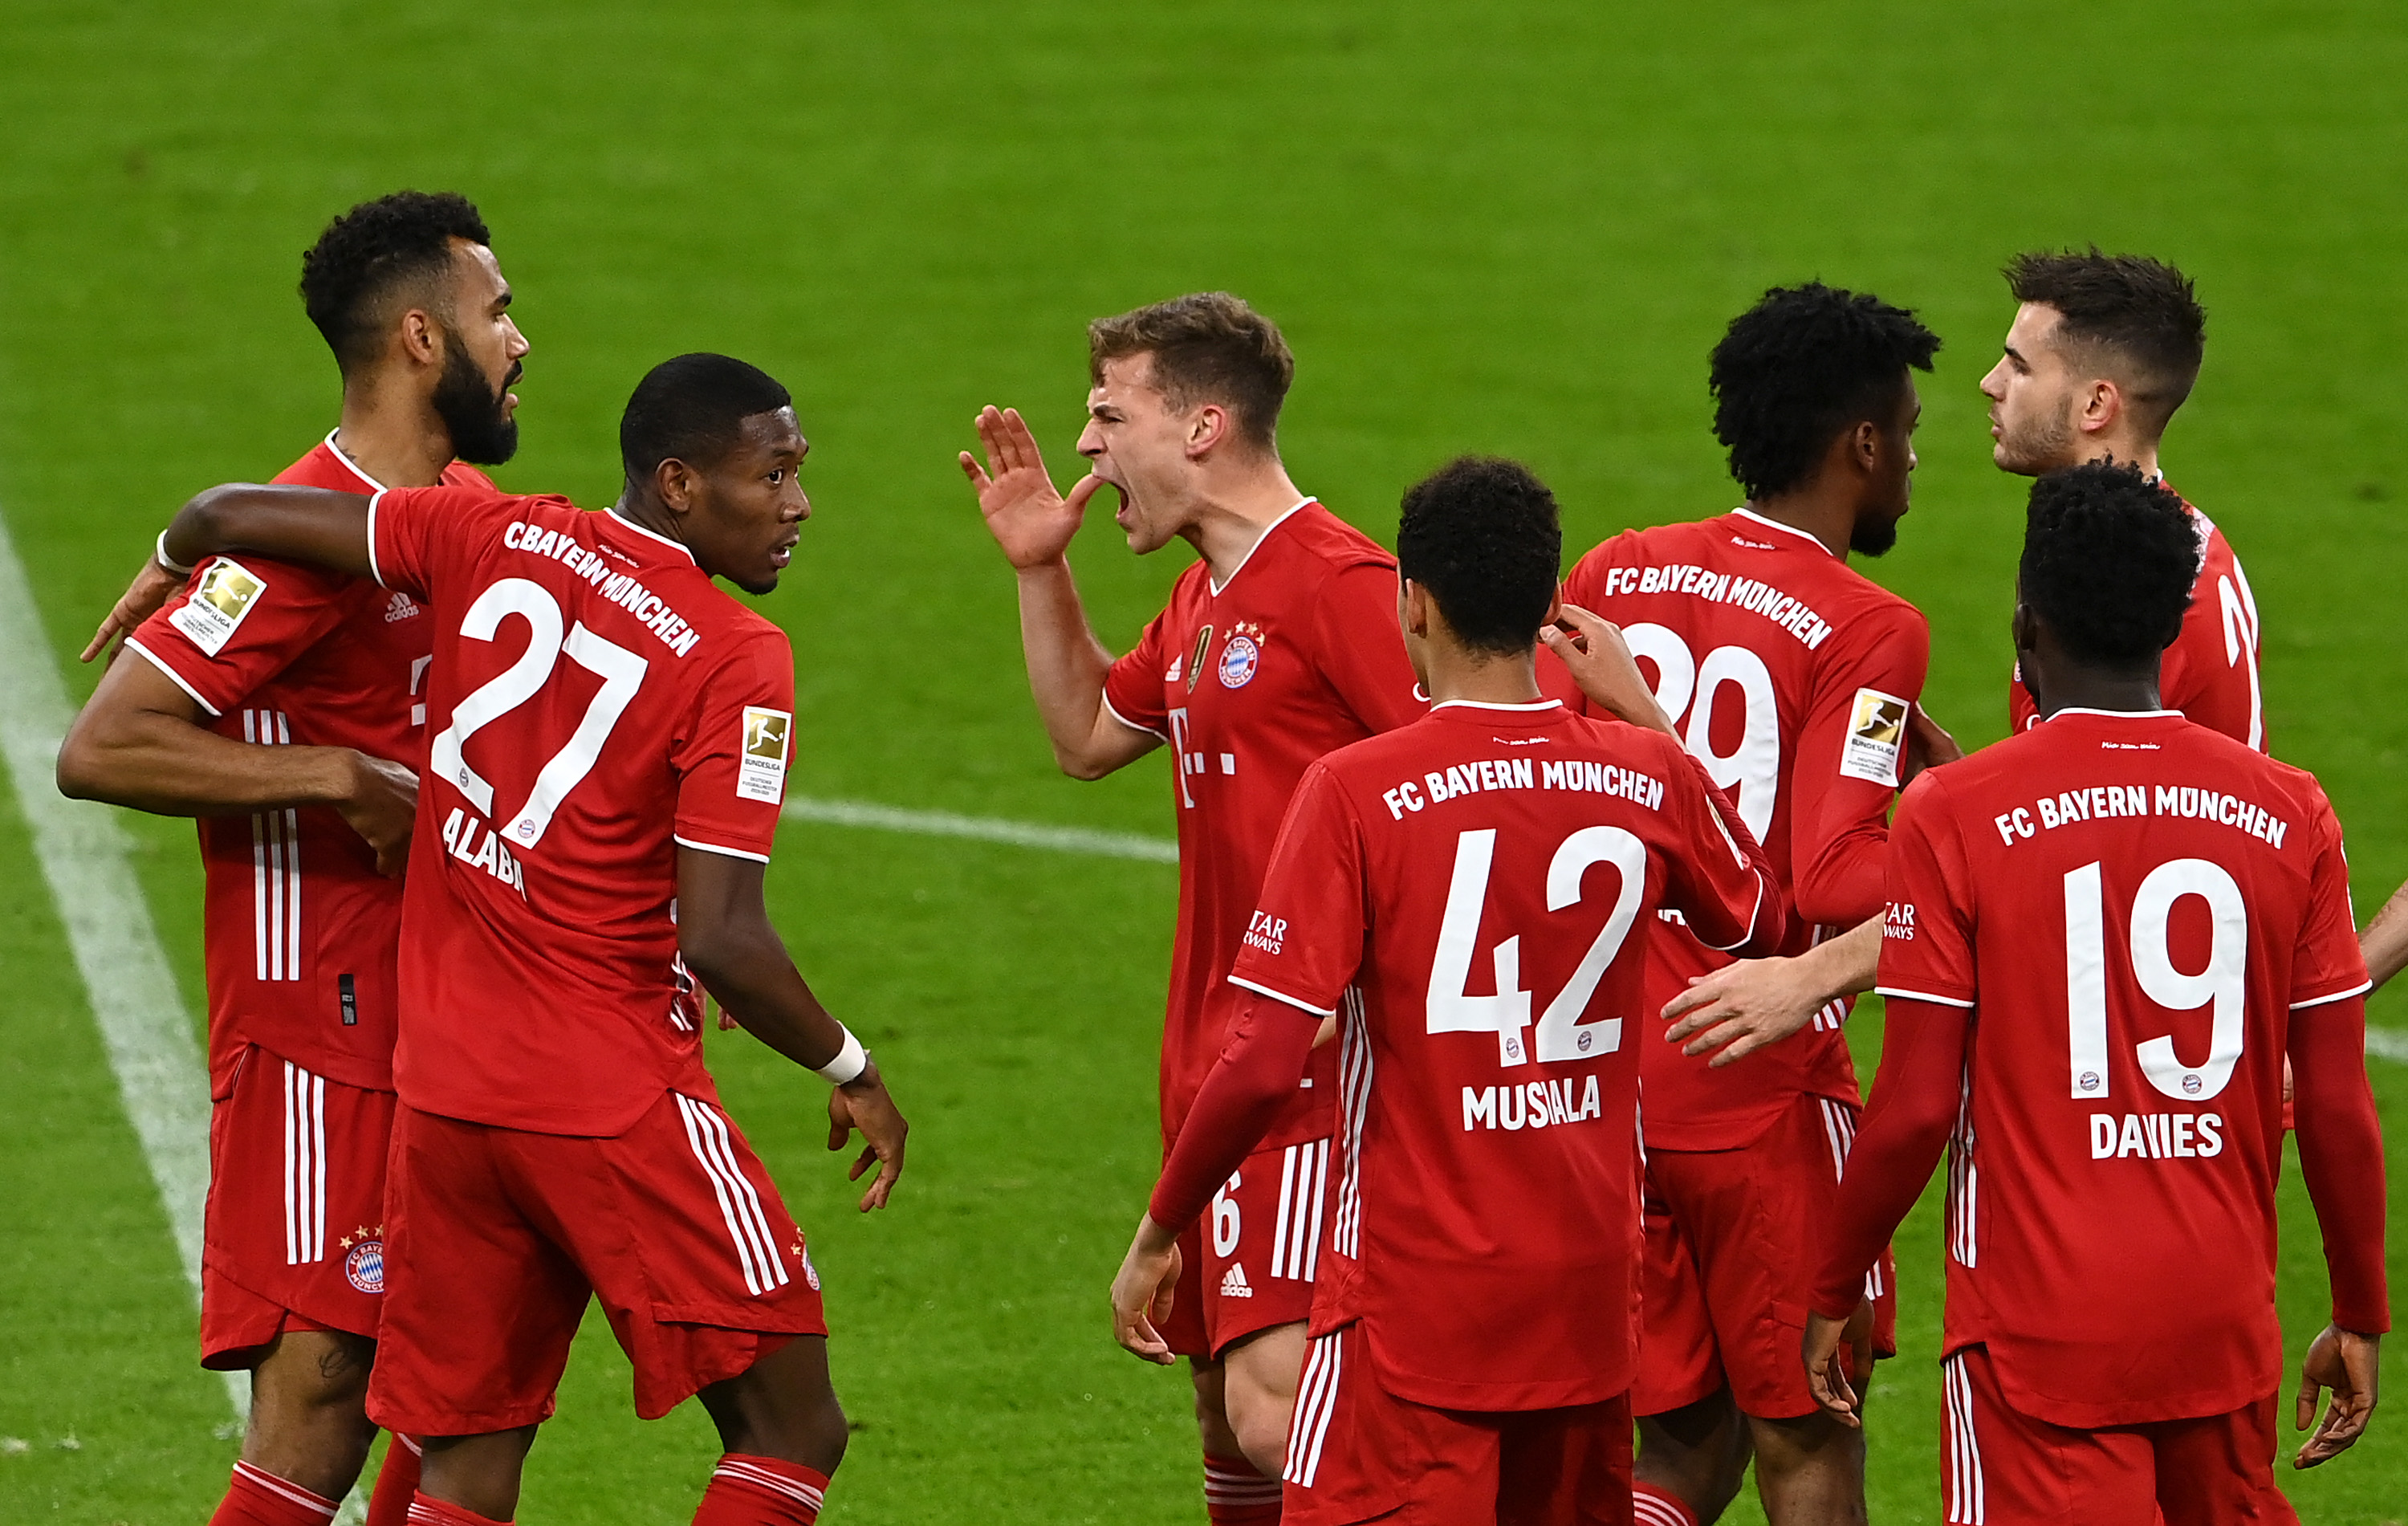 Bayern Munich wins ninth consecutive Bundesliga title